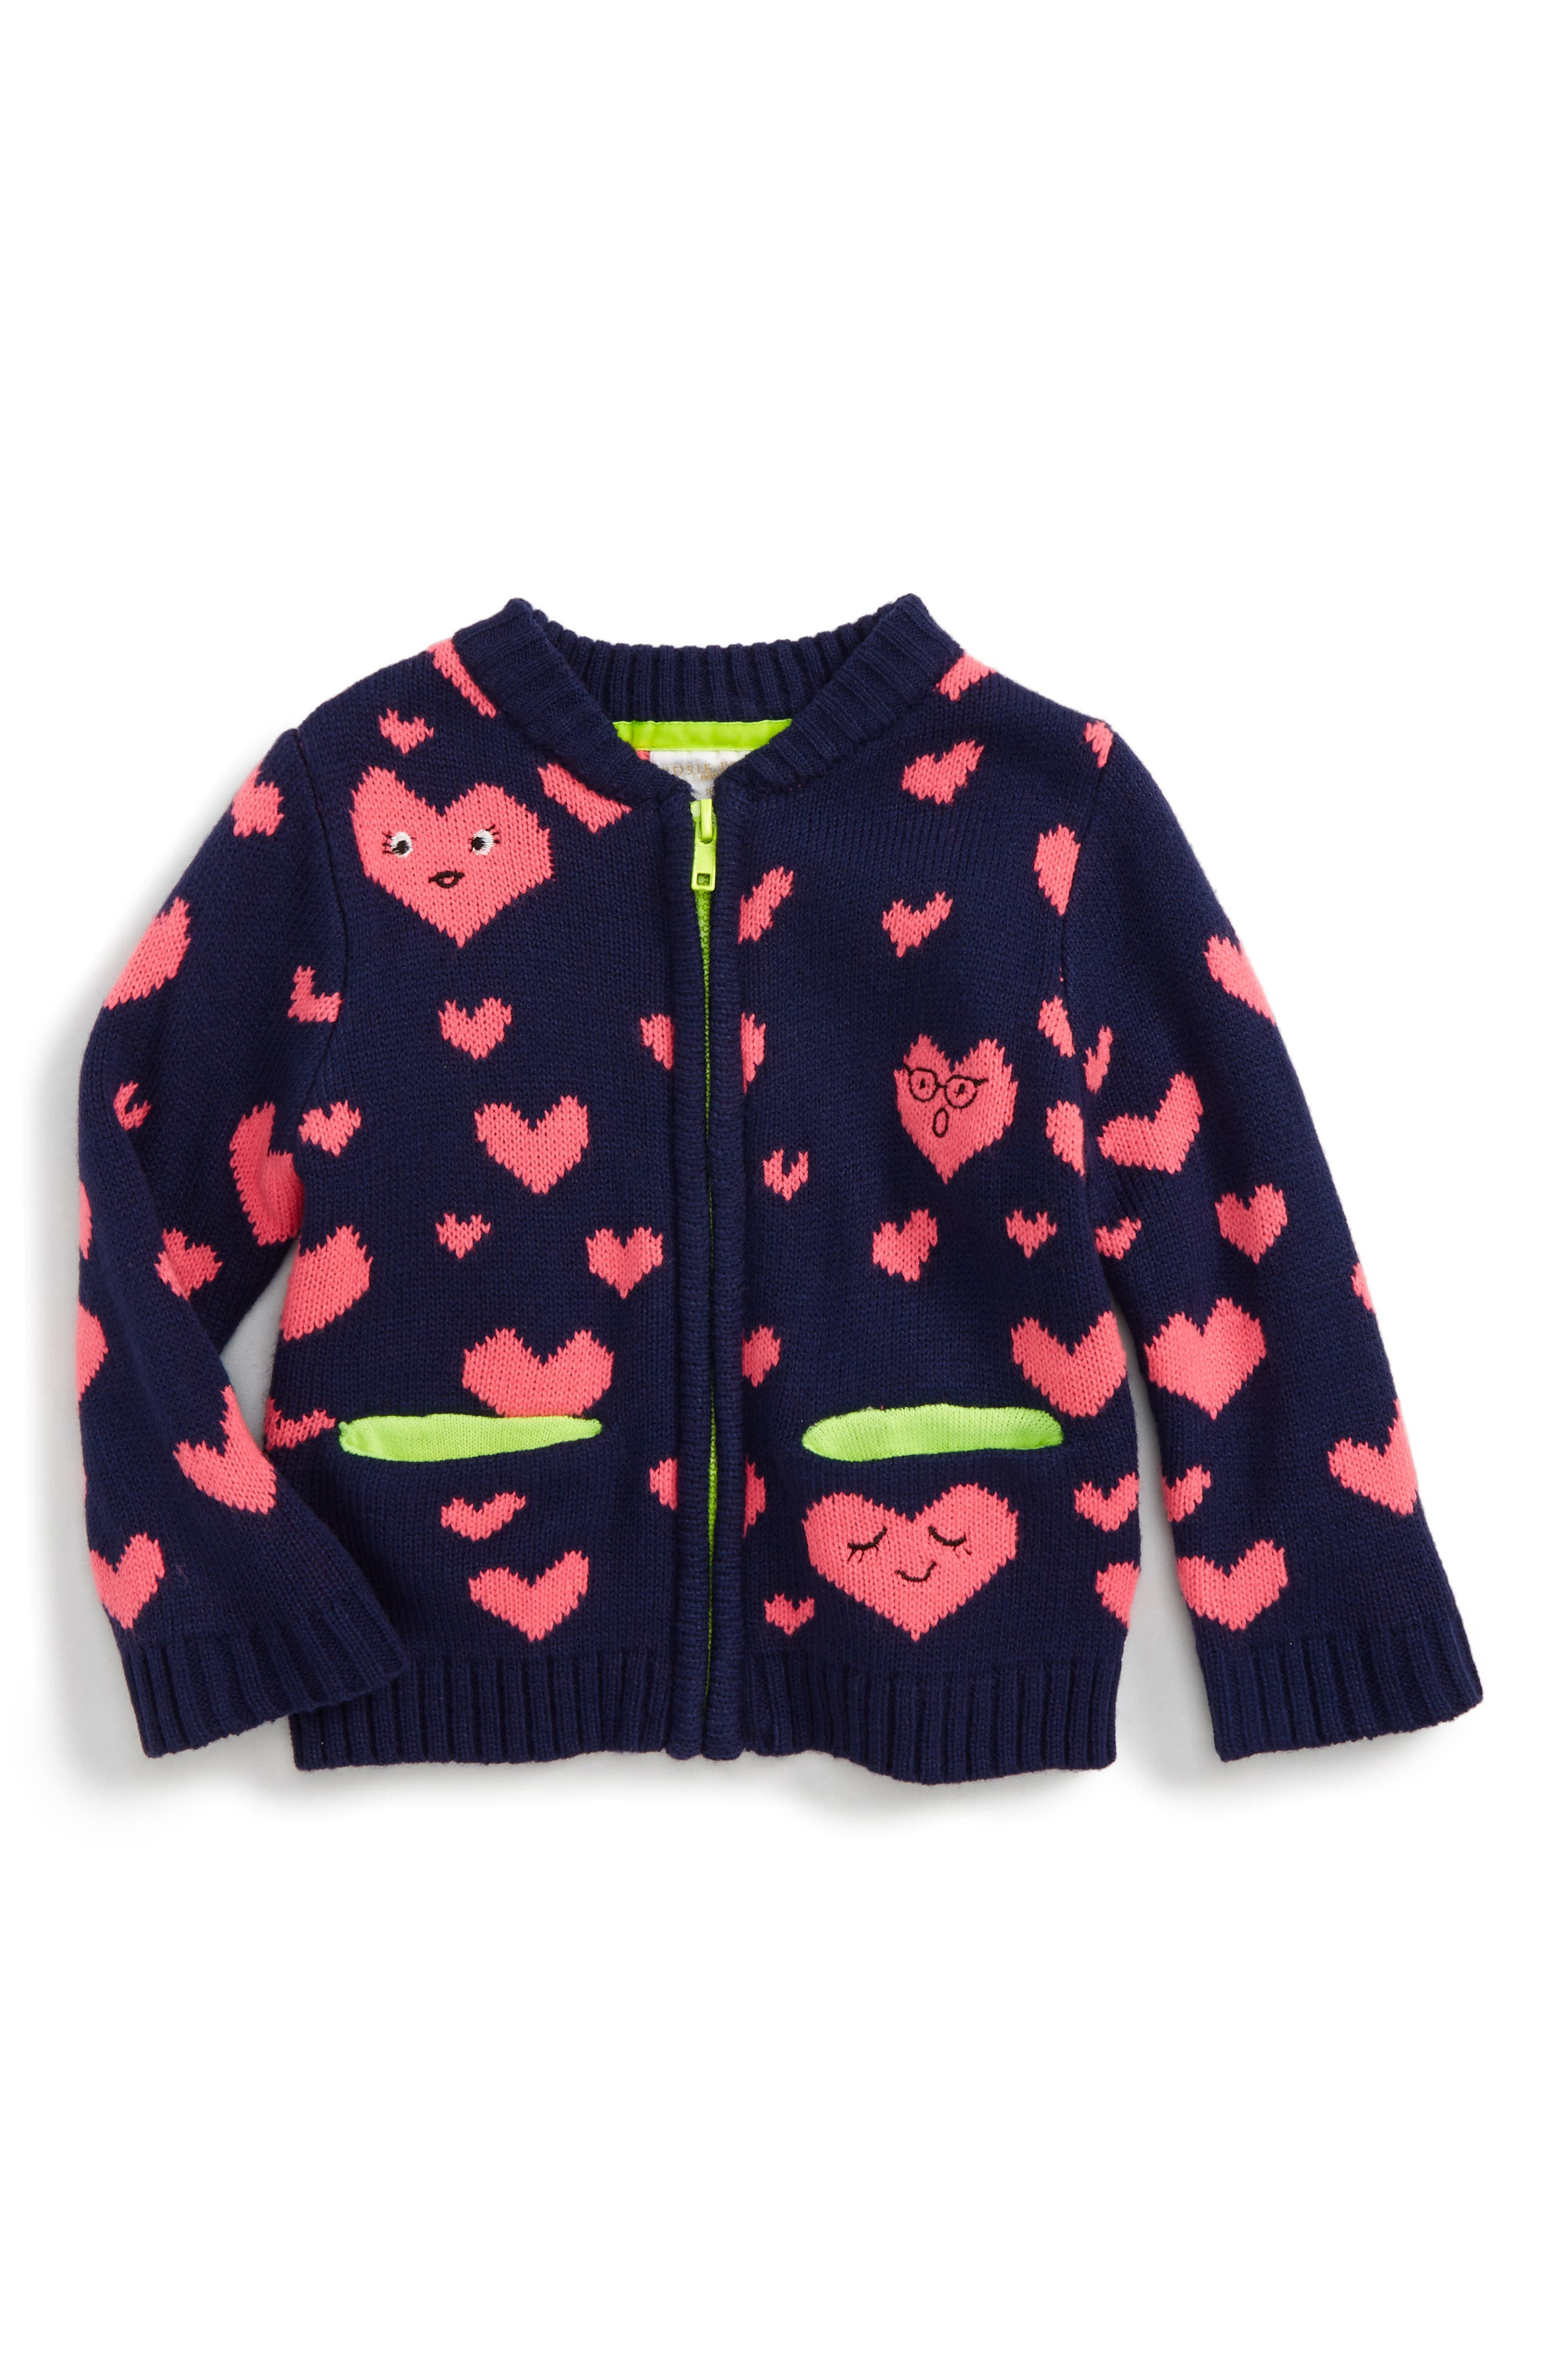 Main Image - Rosie Pope Heart Zip Up Cardigan (Baby Girls)